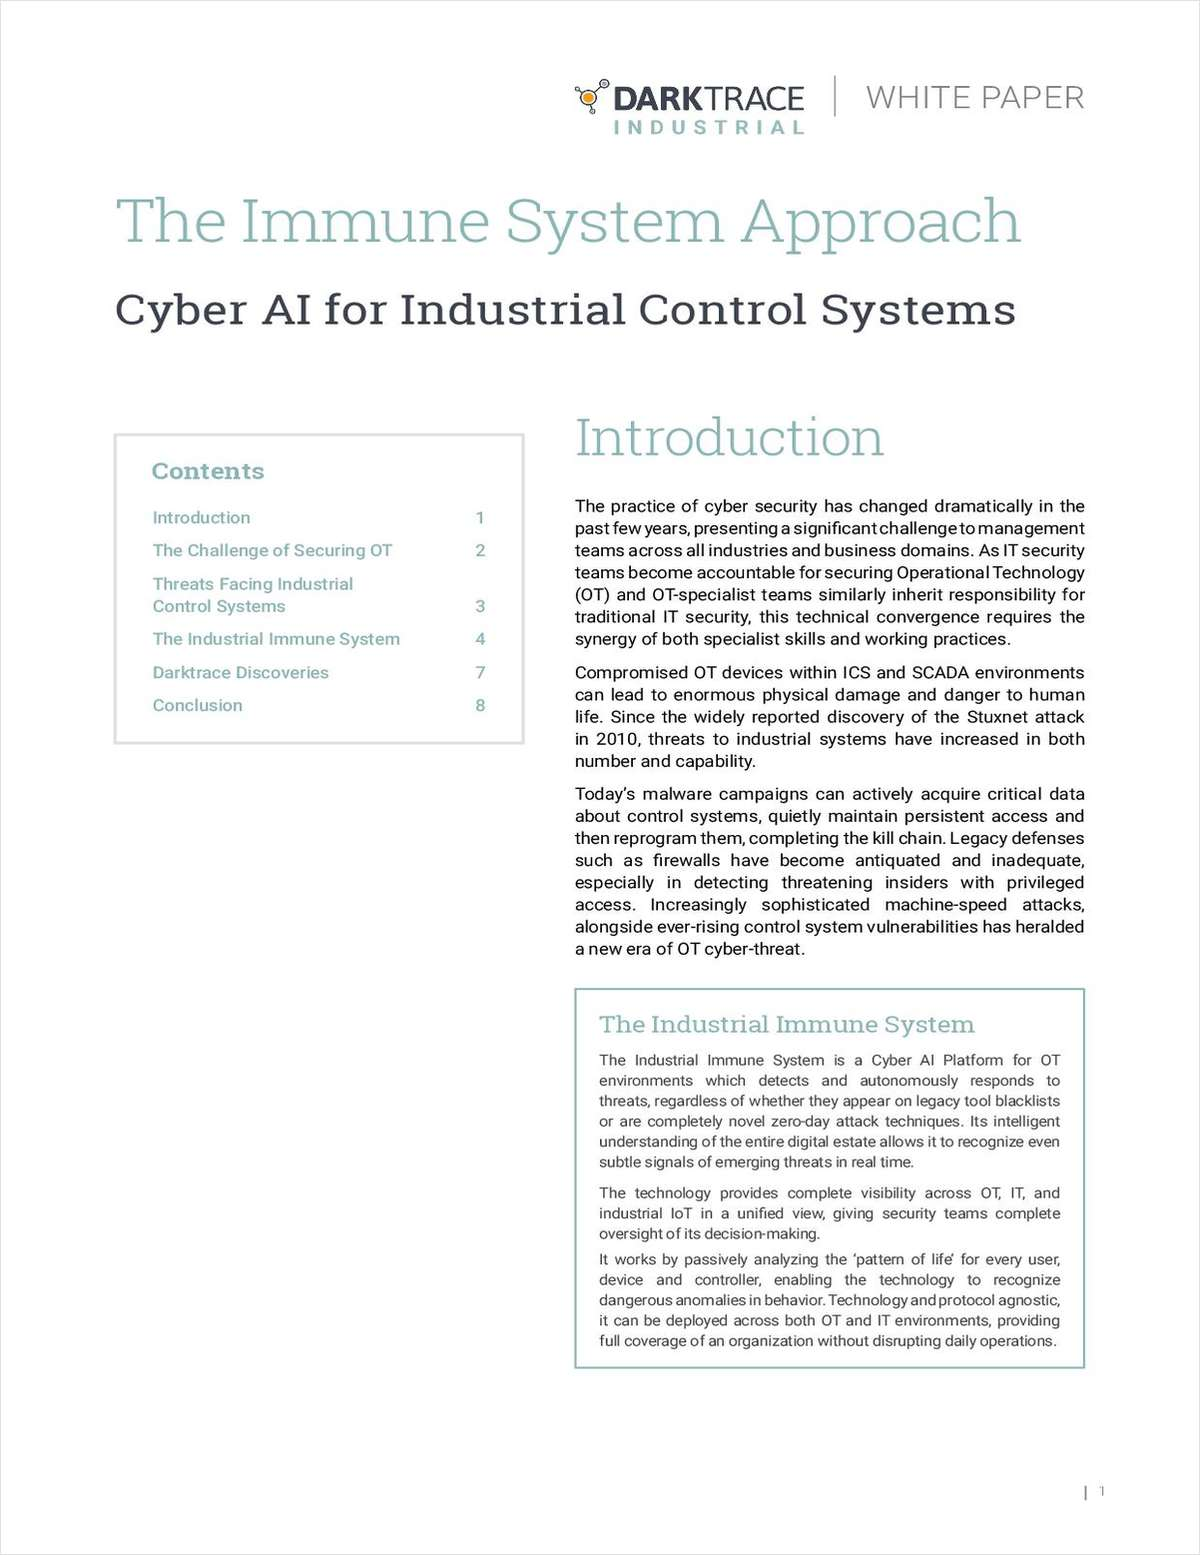 The Immune System Approach: Cyber AI for Industrial Control Systems